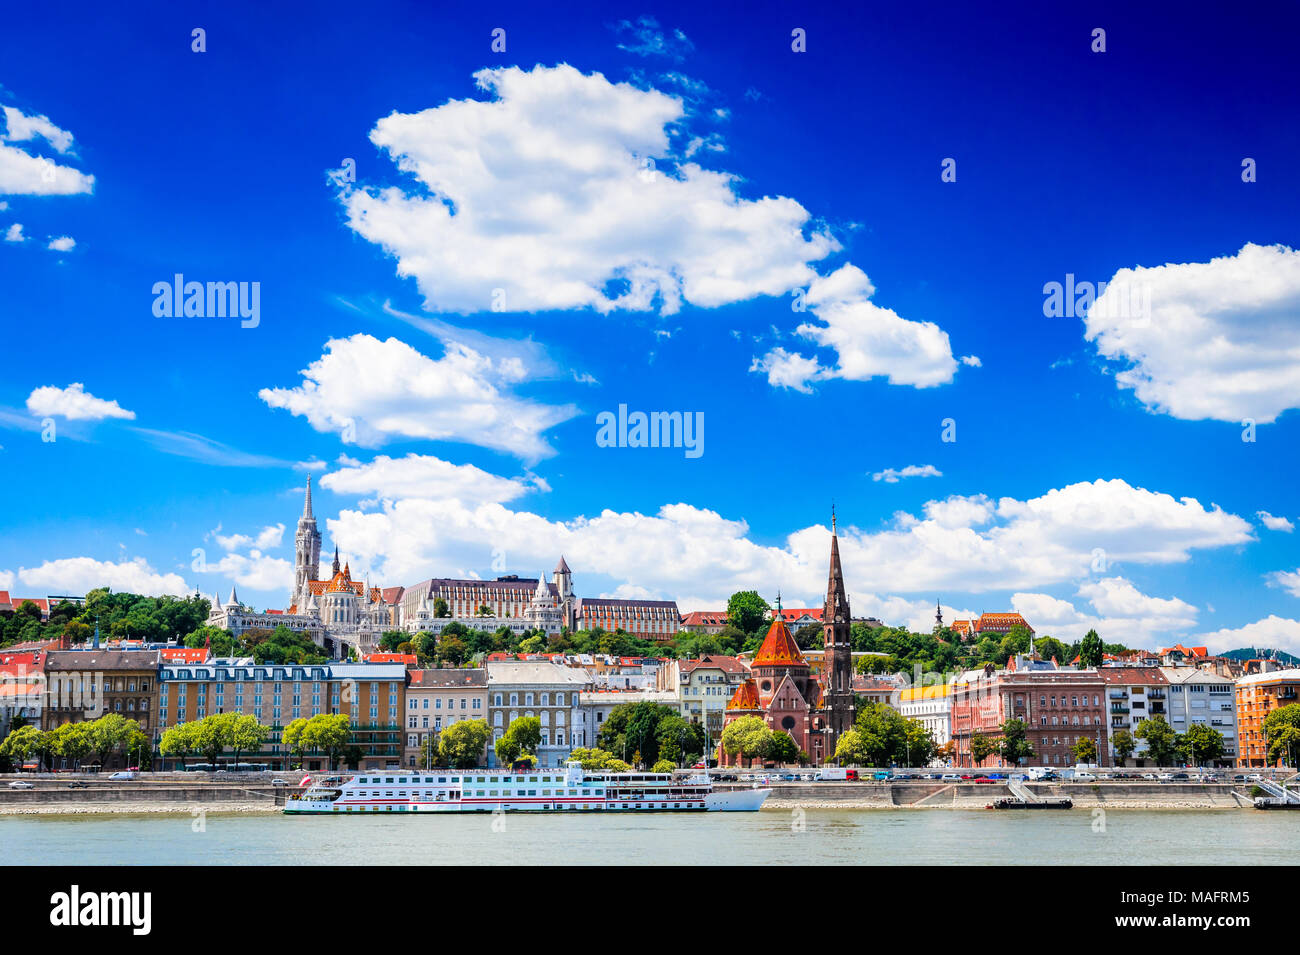 Budapest, Hungary - Castle Hill district, Matyas Church, Fishermen Bastion and Danube River. - Stock Image